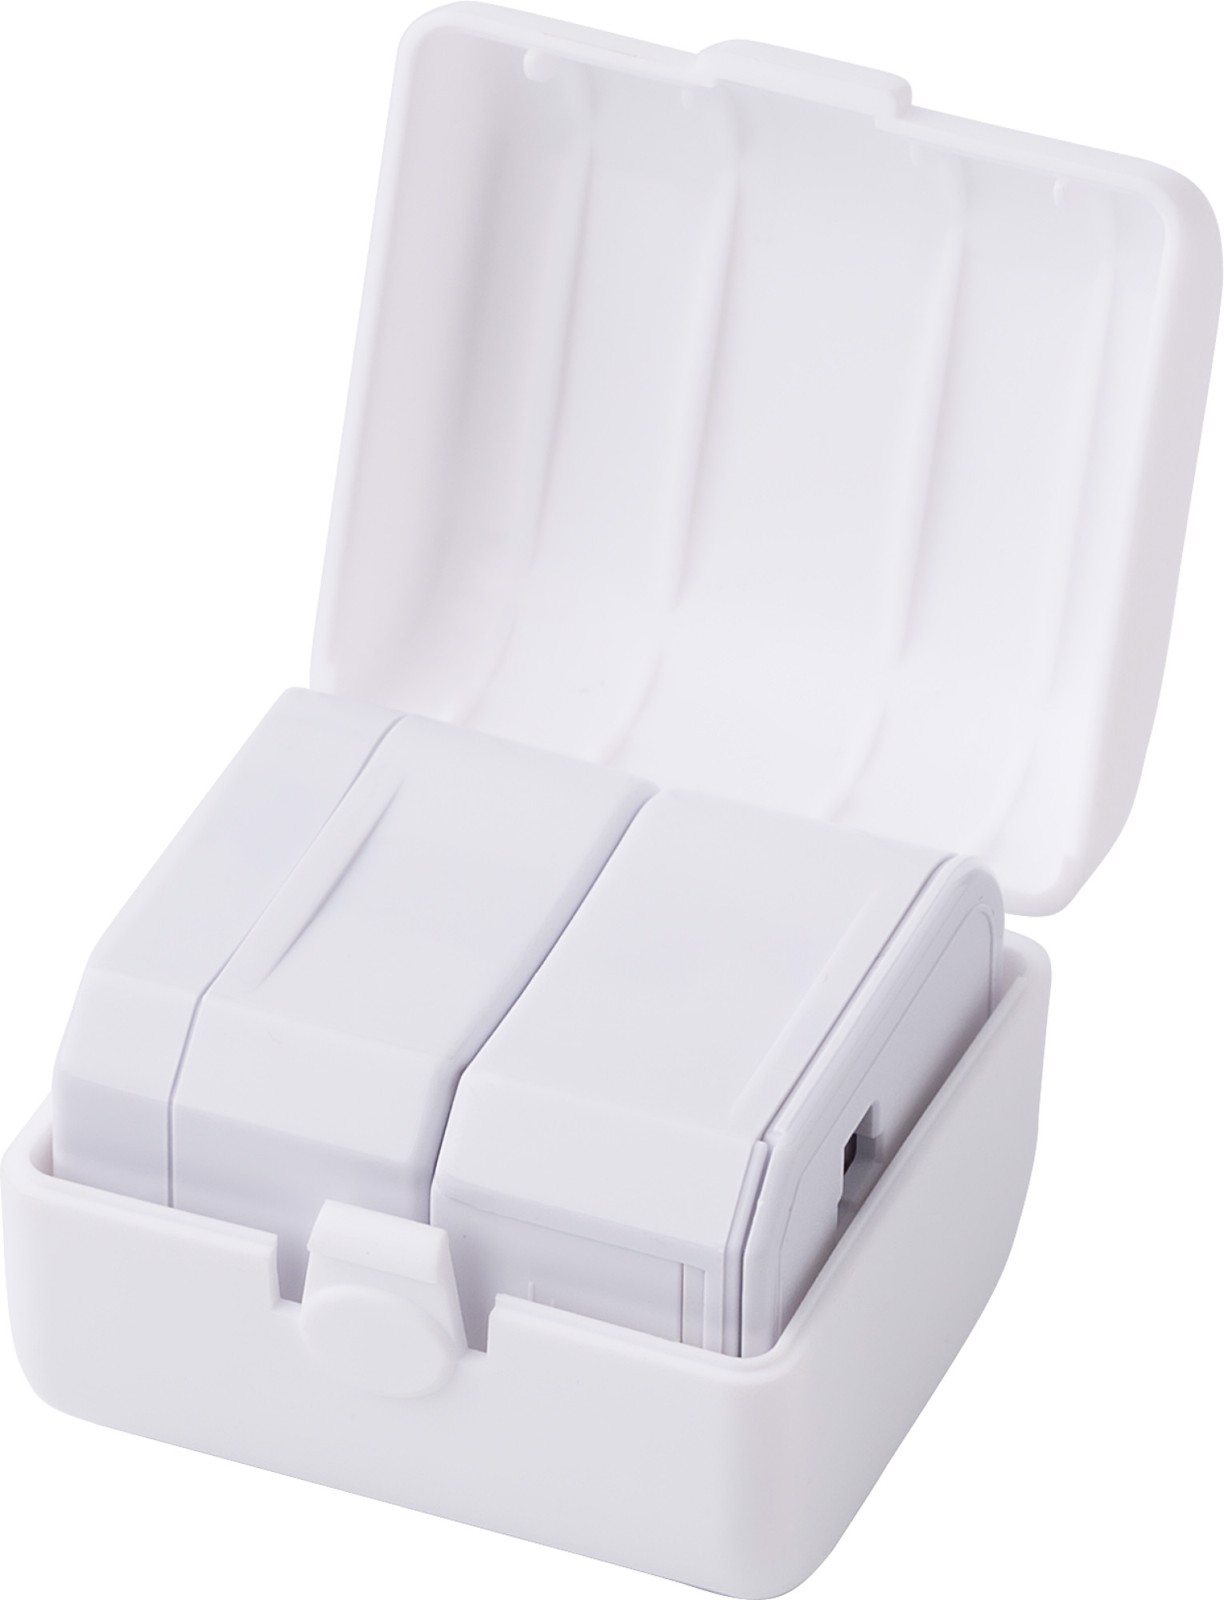 ABS travel adapter - White